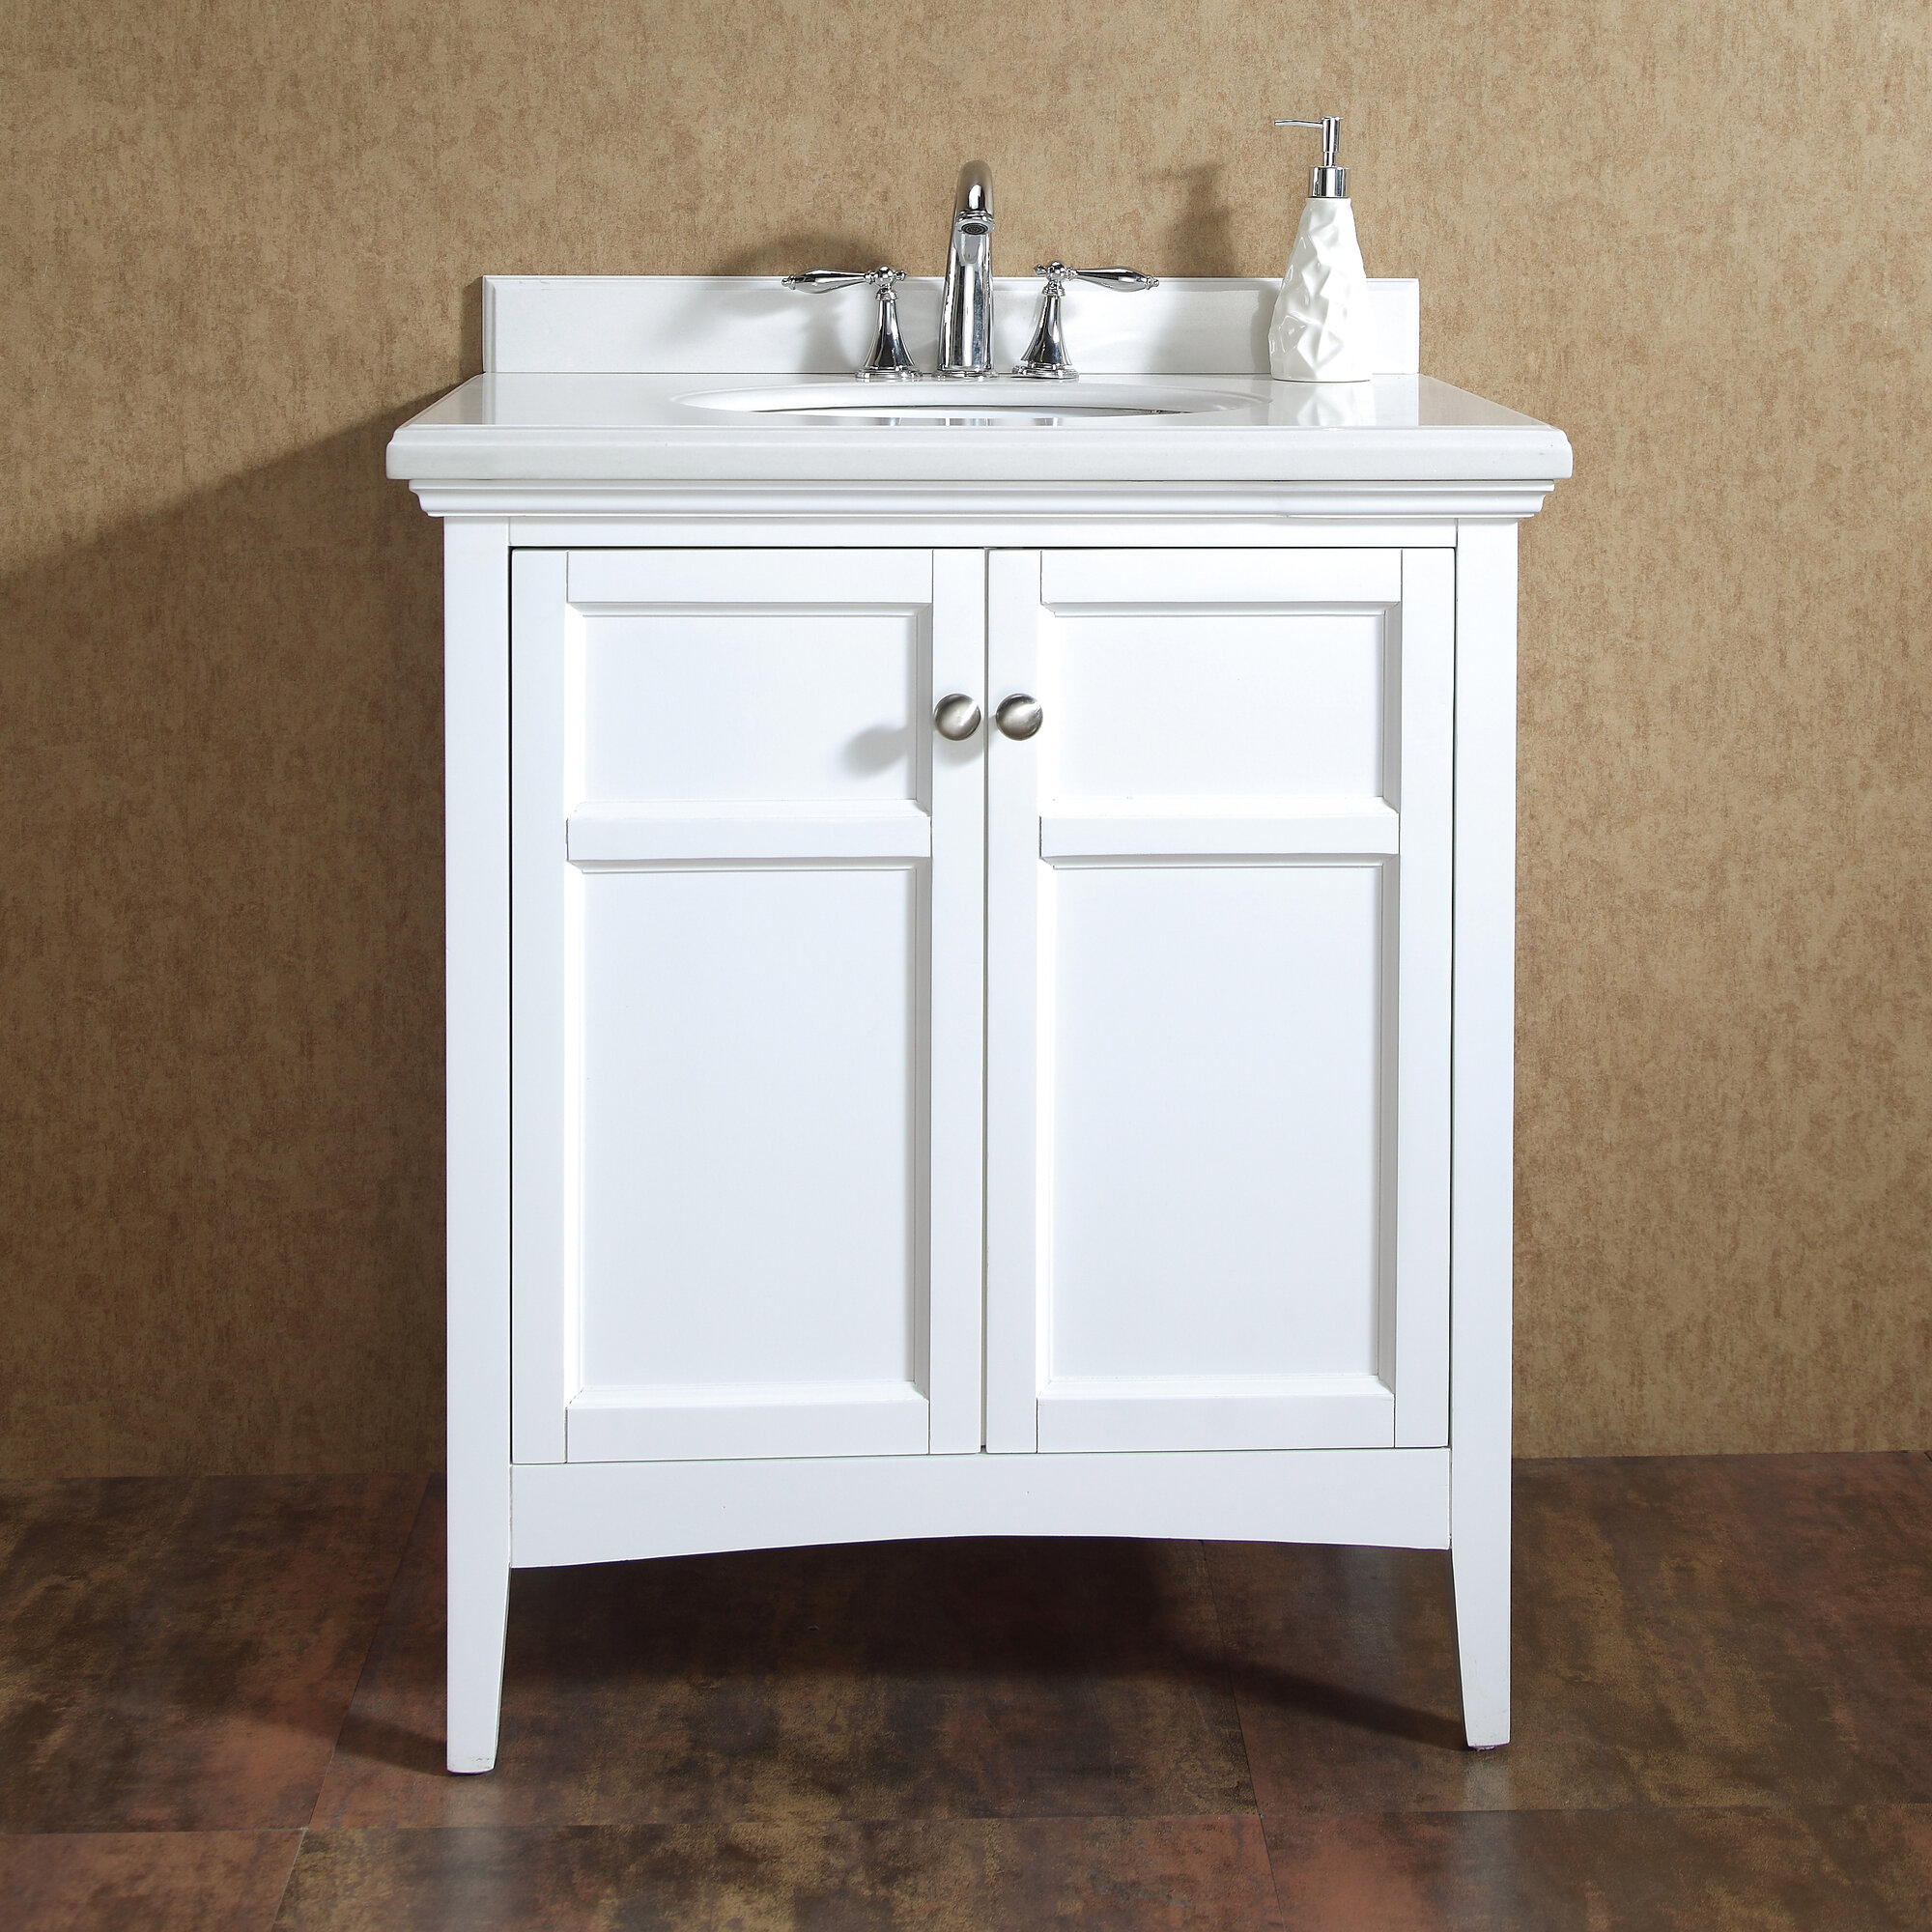 Ove Decors Campo 30 Single Bathroom Vanity Set